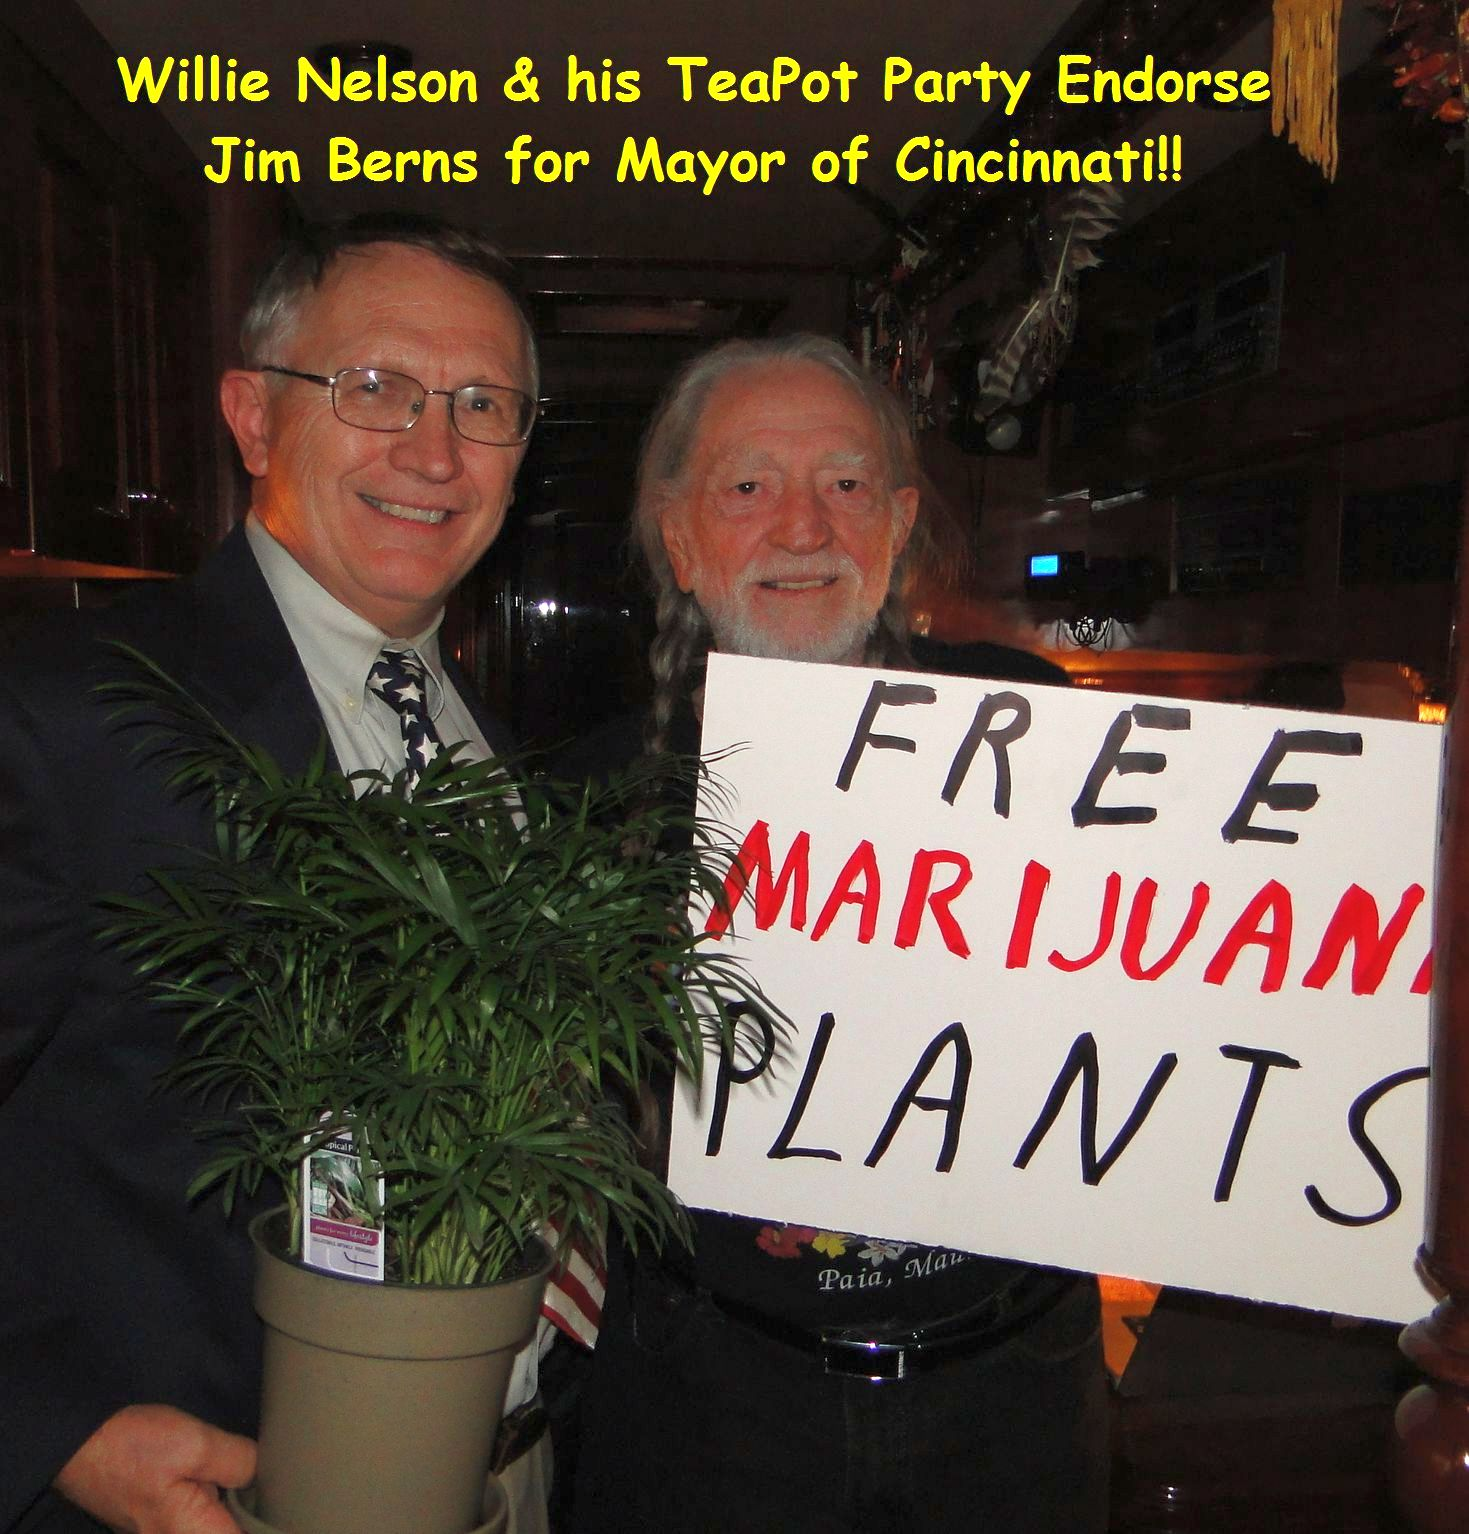 Willie Endorses Jim Berns for Mayor